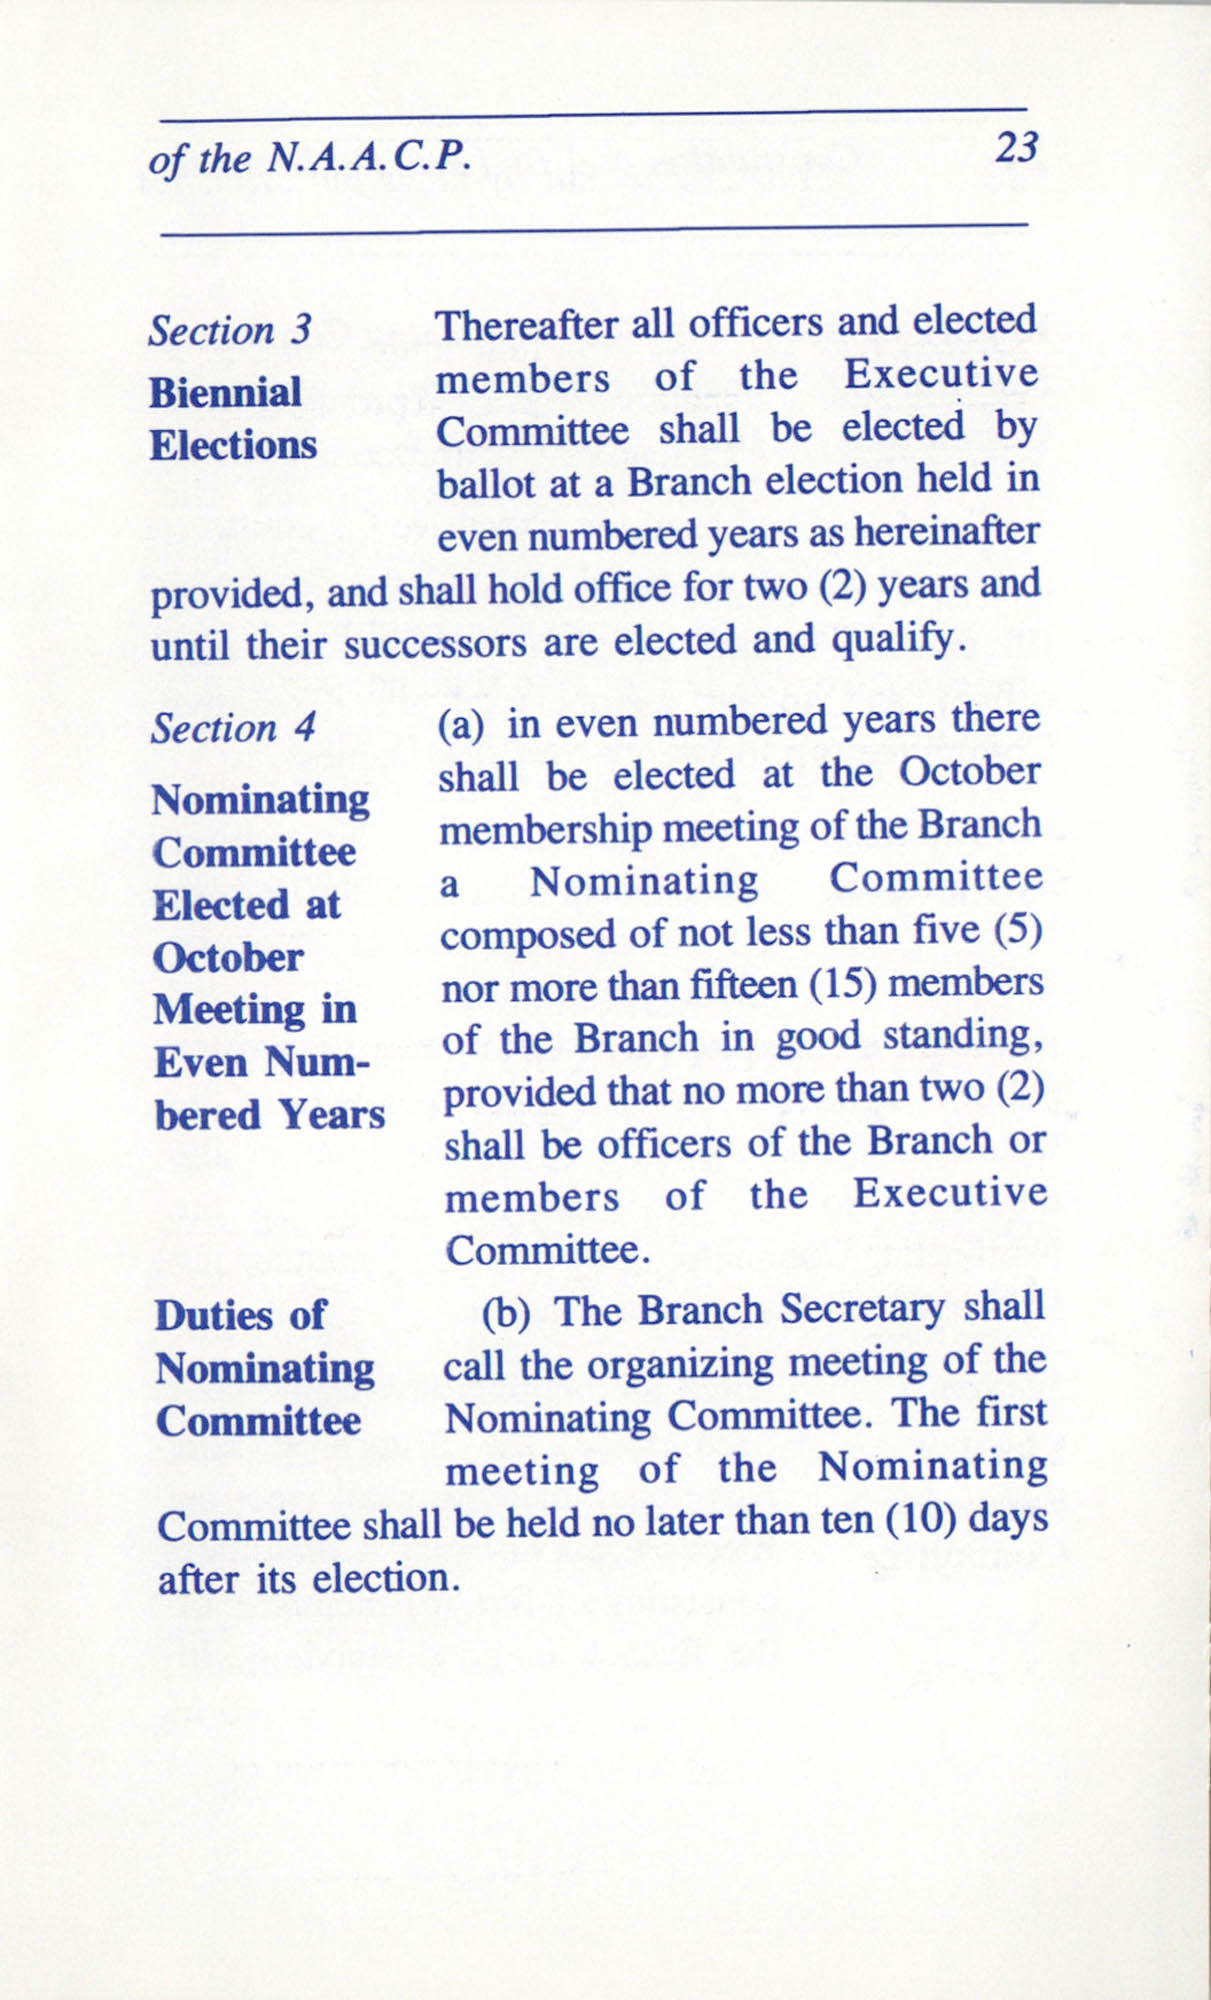 Constitution and By-Laws for Branches of the NAACP, June 1993, Page 23